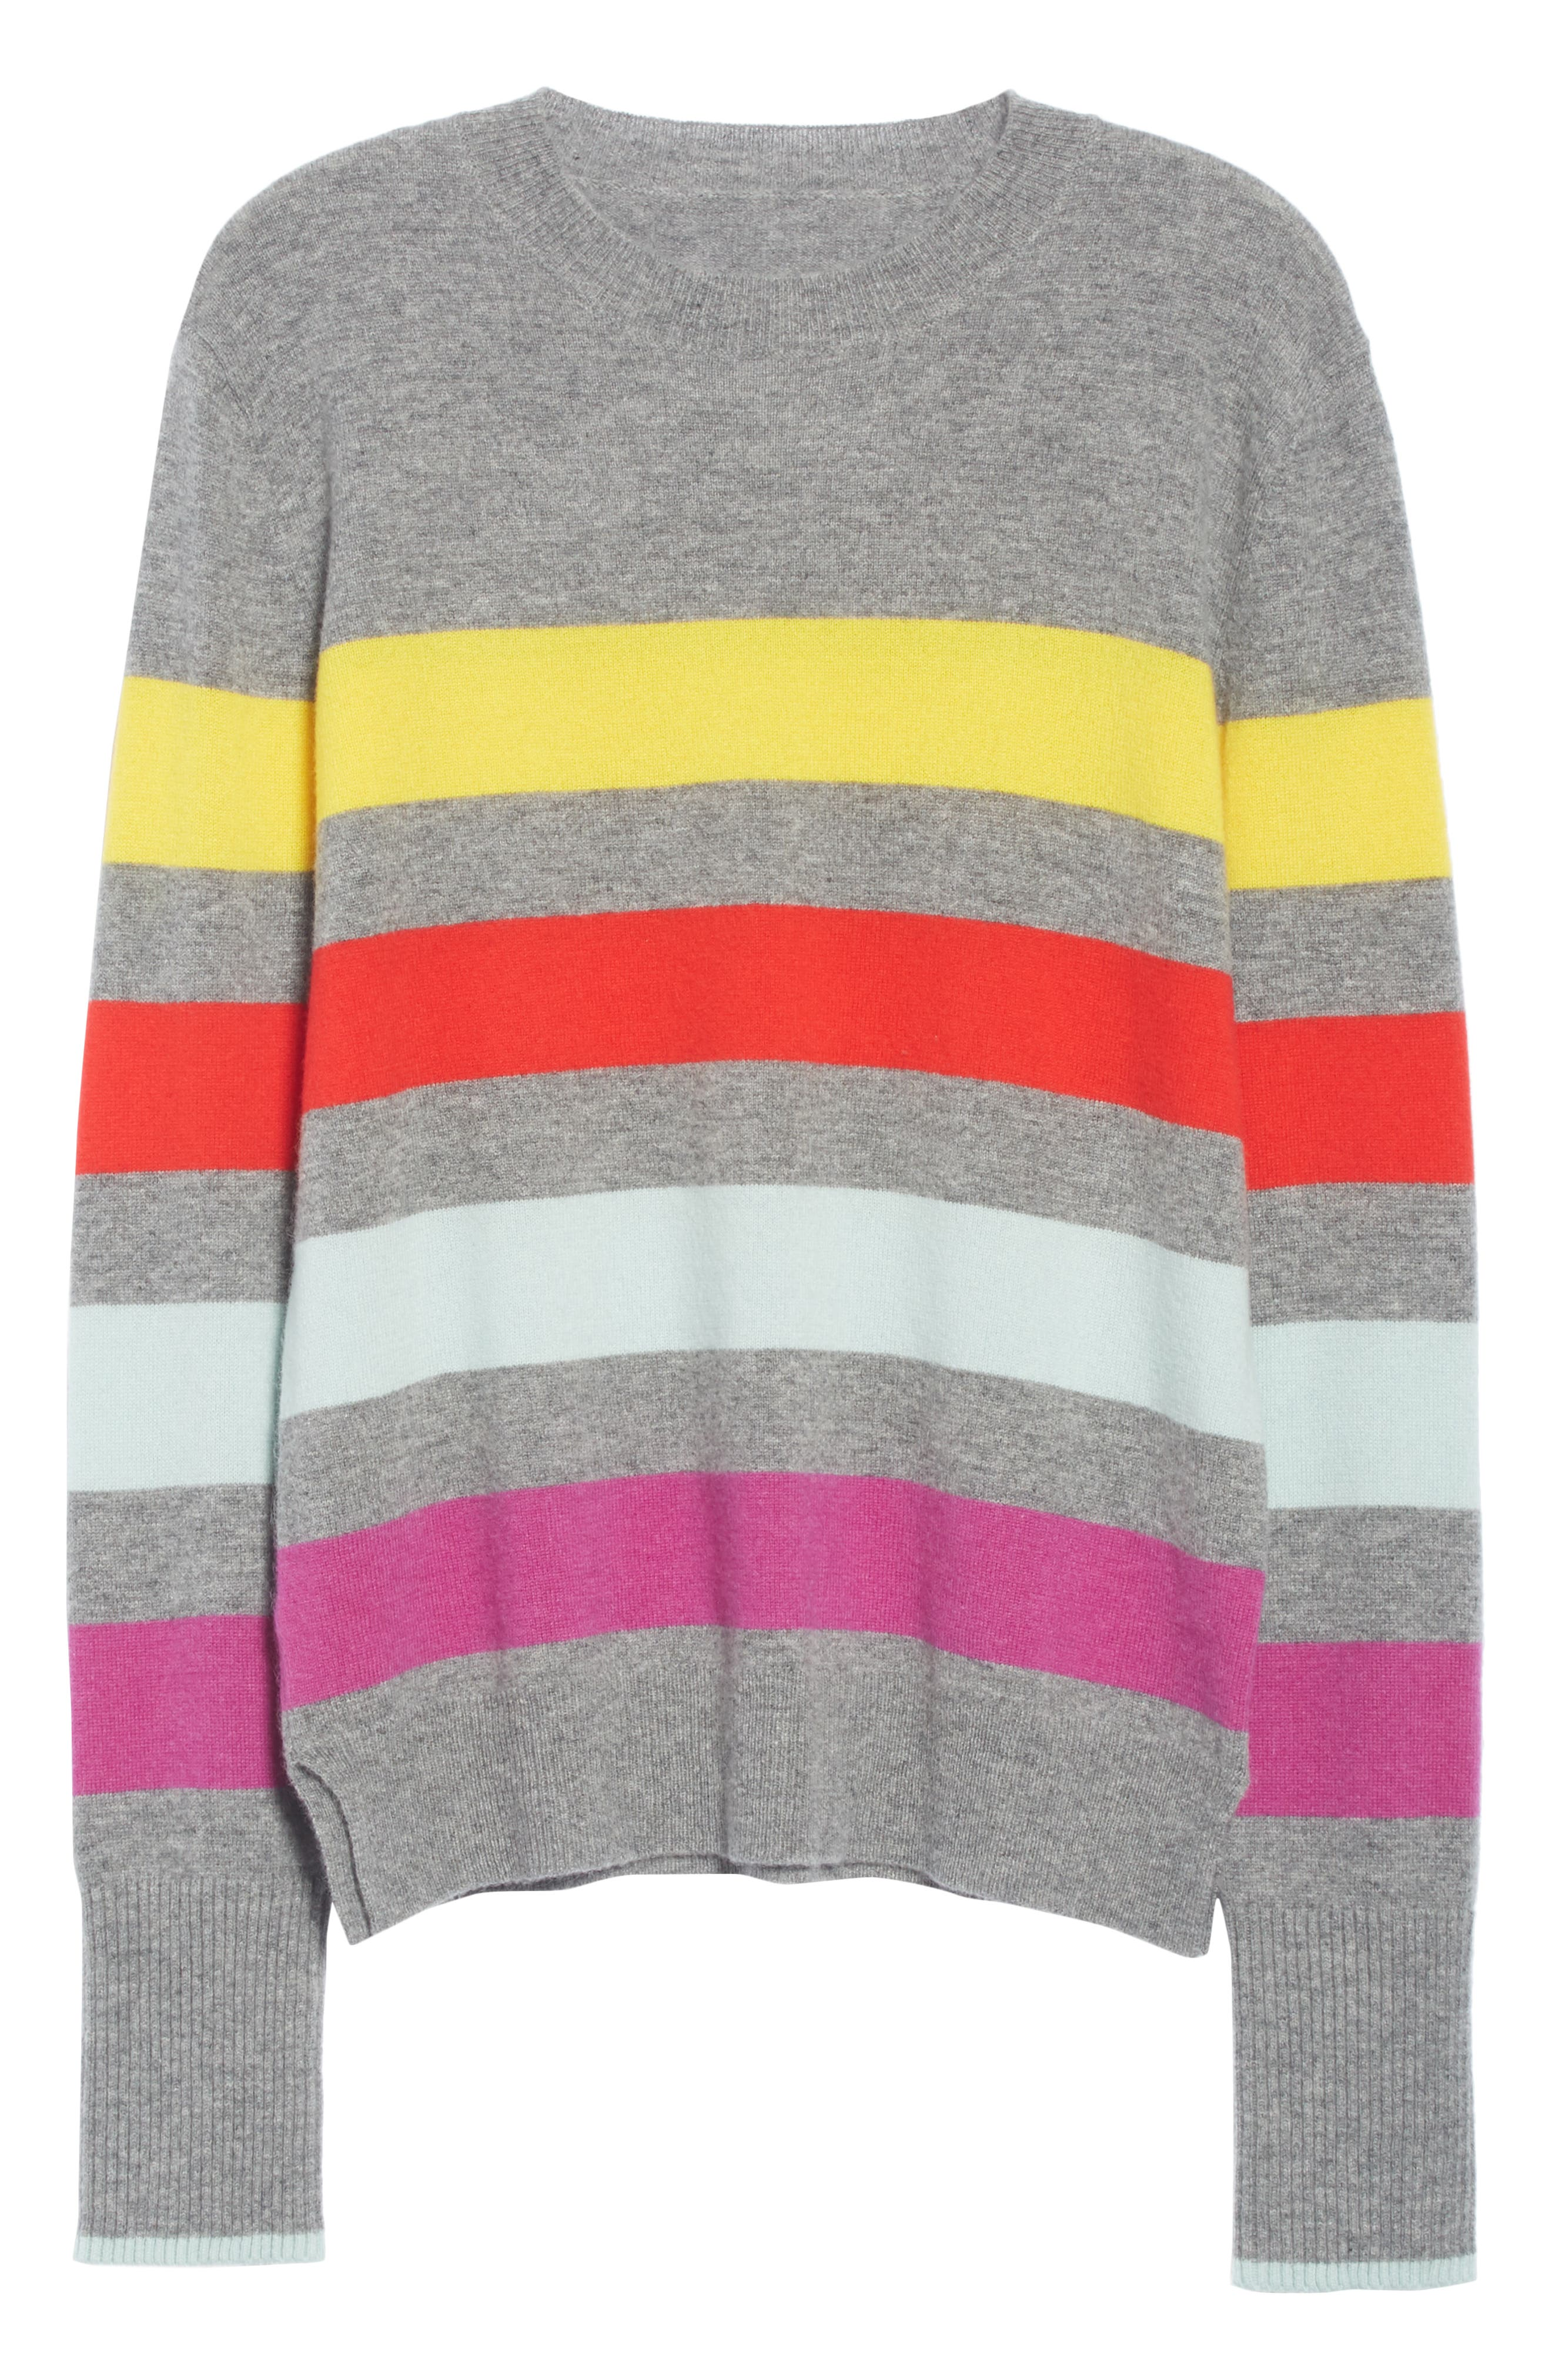 Candy Stripe Sweater,                             Alternate thumbnail 6, color,                             GREY MARLE/ RAINBOW